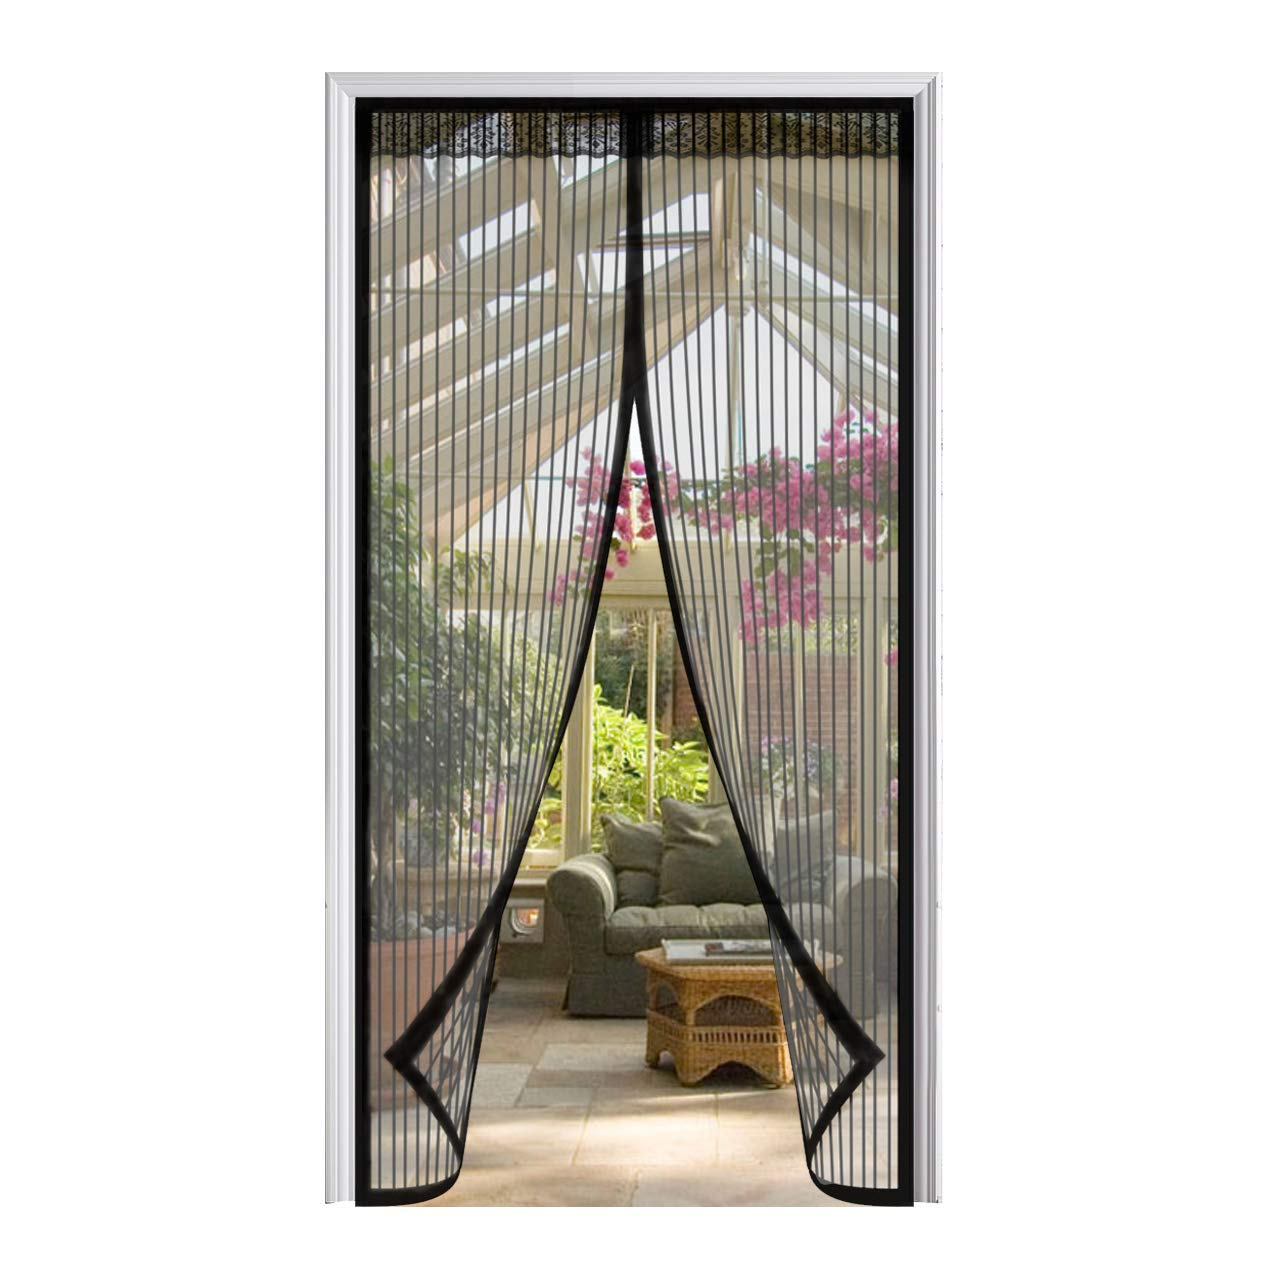 LOOCH Magnetic Screen Door with Heavy Duty Mesh Curtain and Full Frame Velcro Fits Door Size up to 34-82 Max-Black by LOOCH